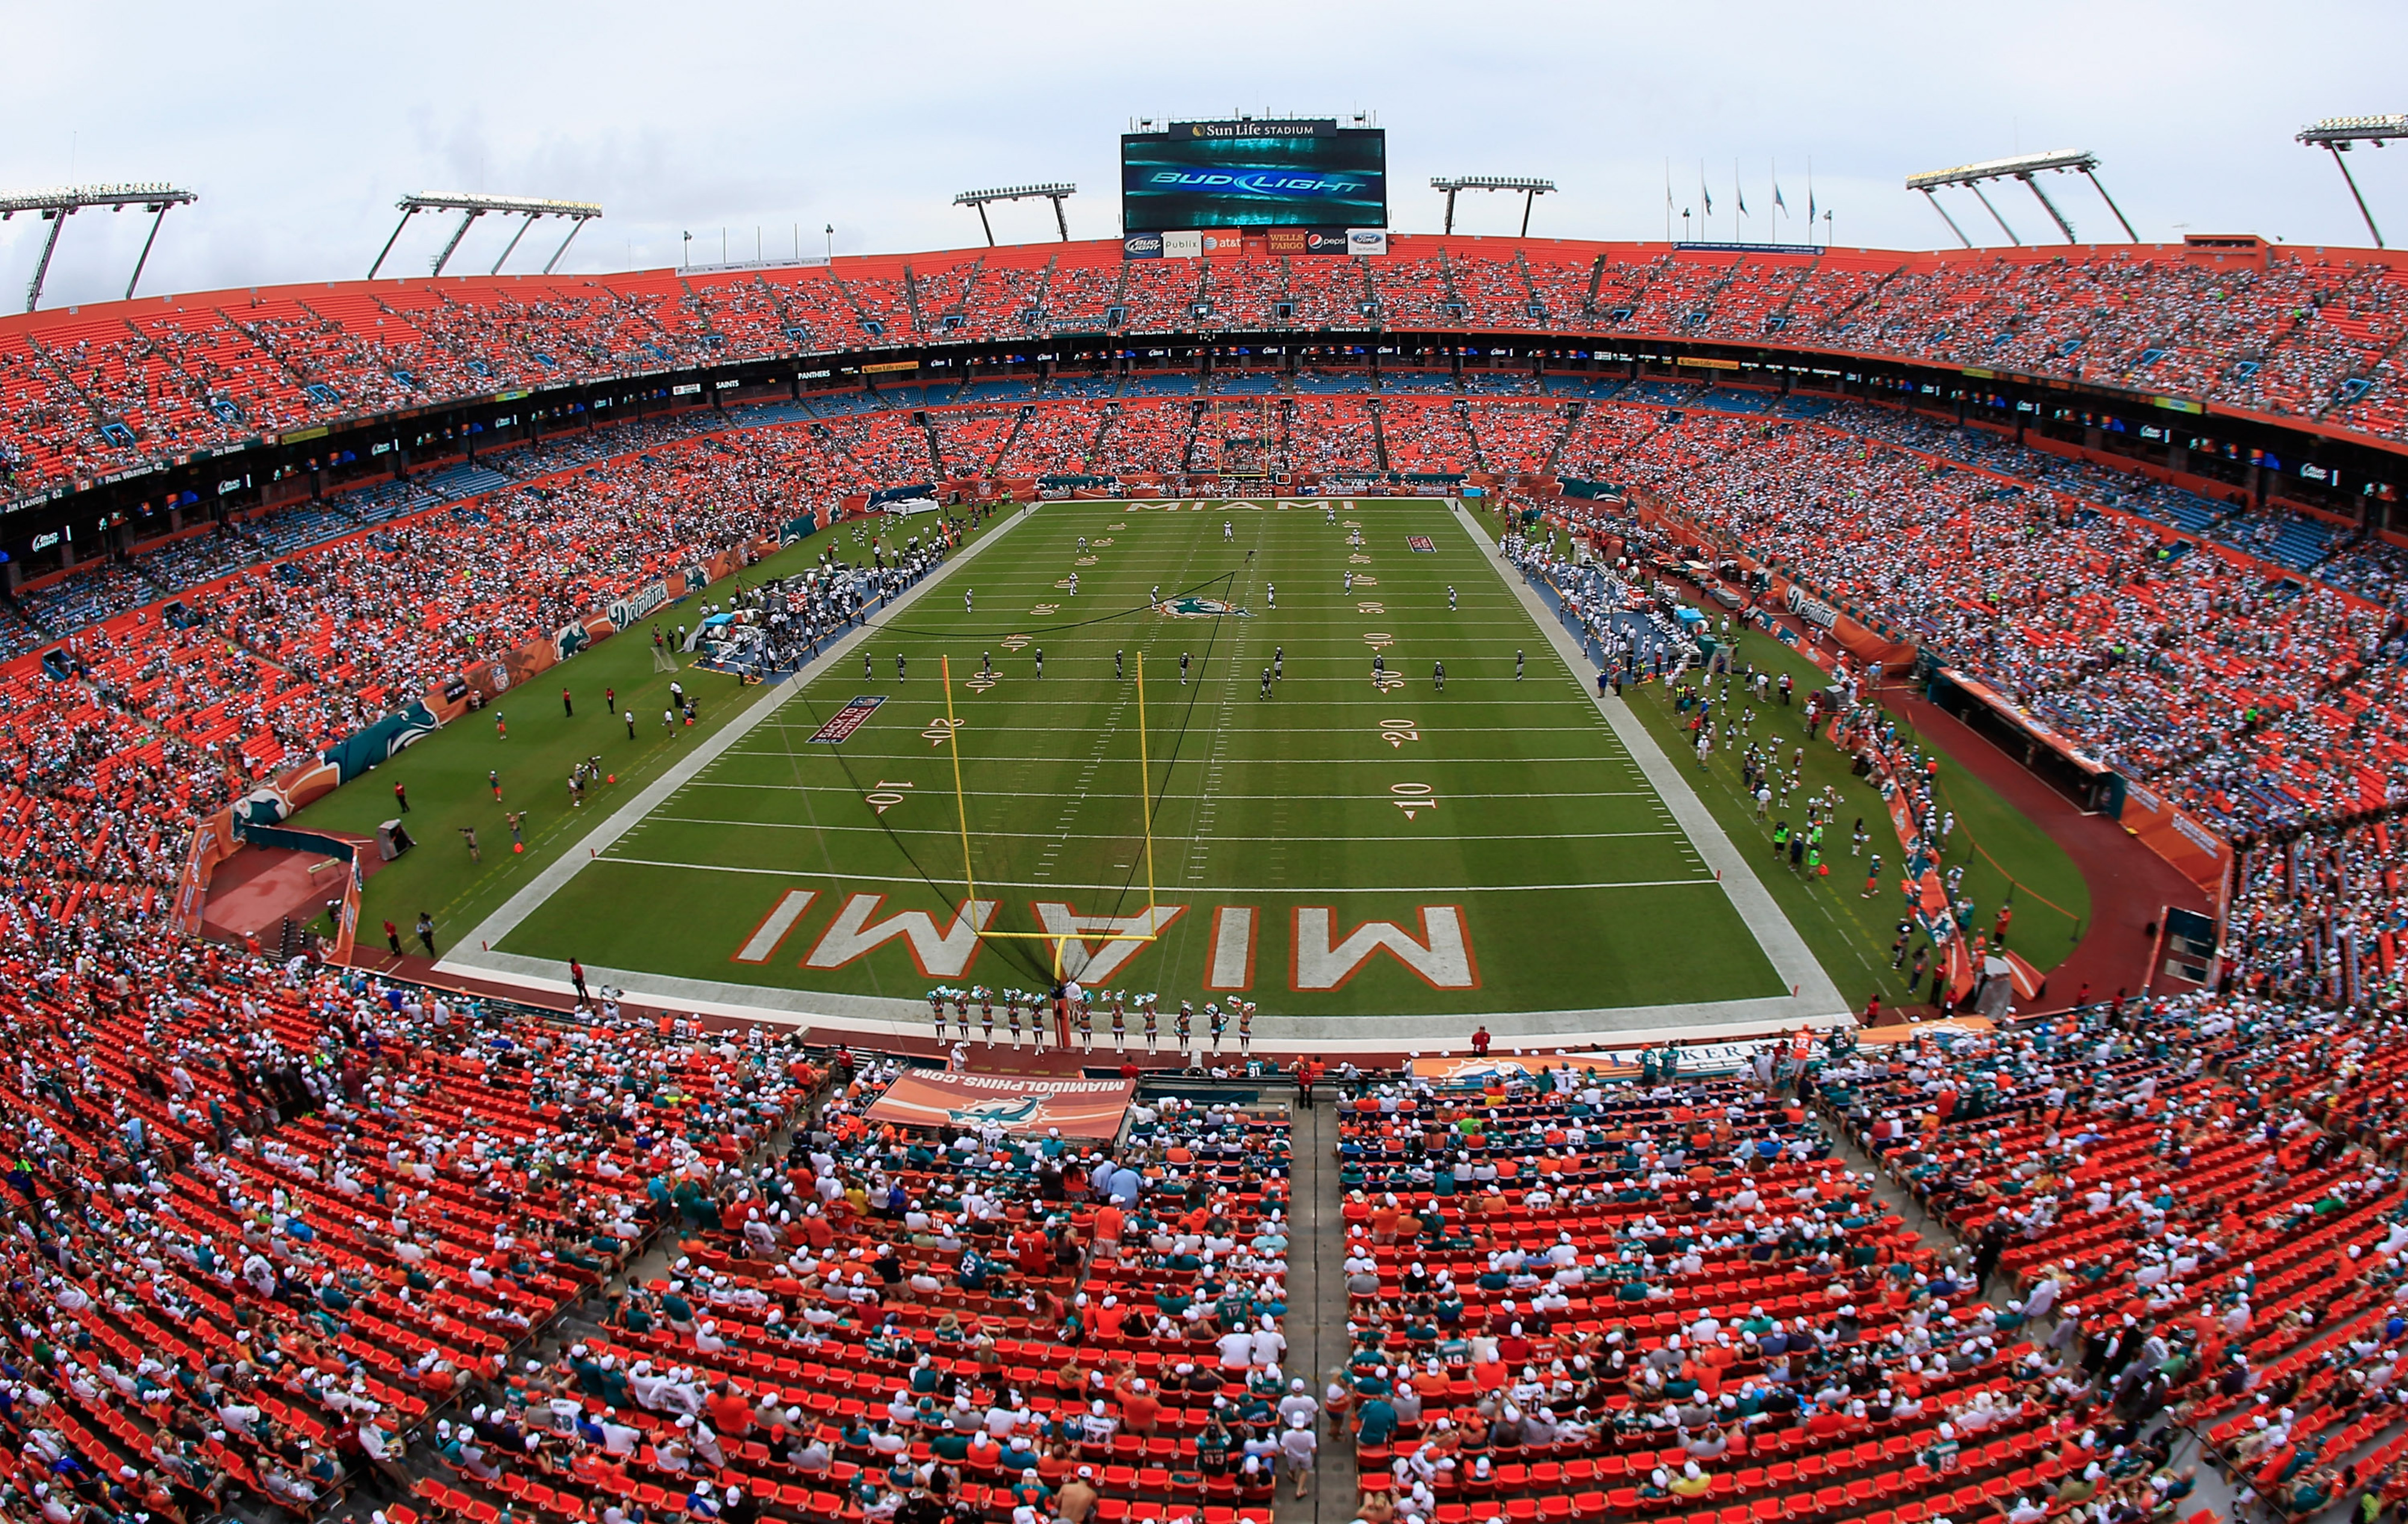 The Miami Dolphins have not yet reached the 85% threshold to declare this Sunday's game a sellout.